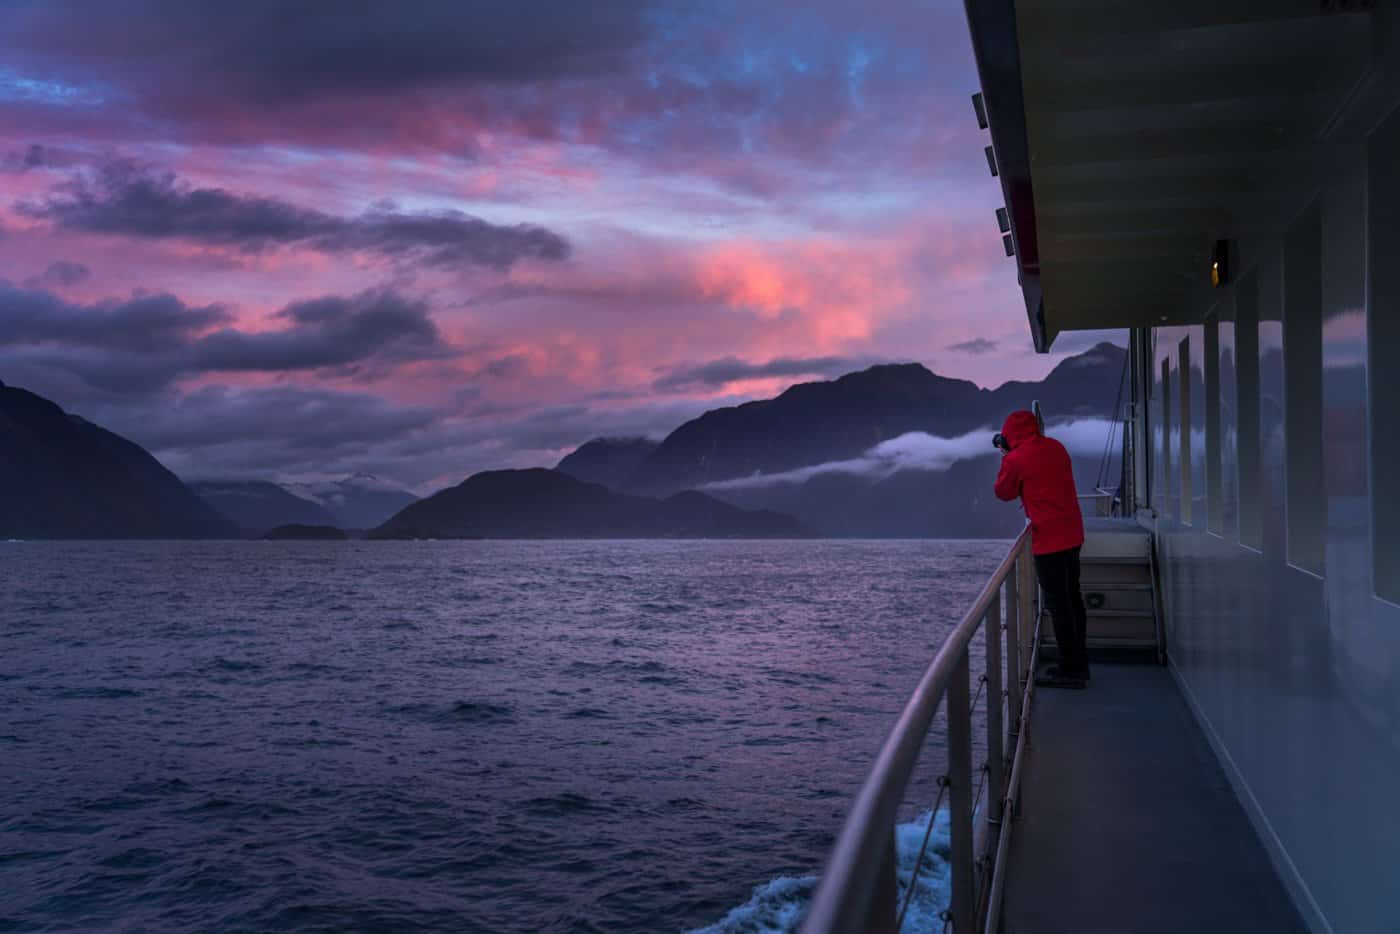 An incredible, moody sunset over the fjords of the Doubtful Sounds.